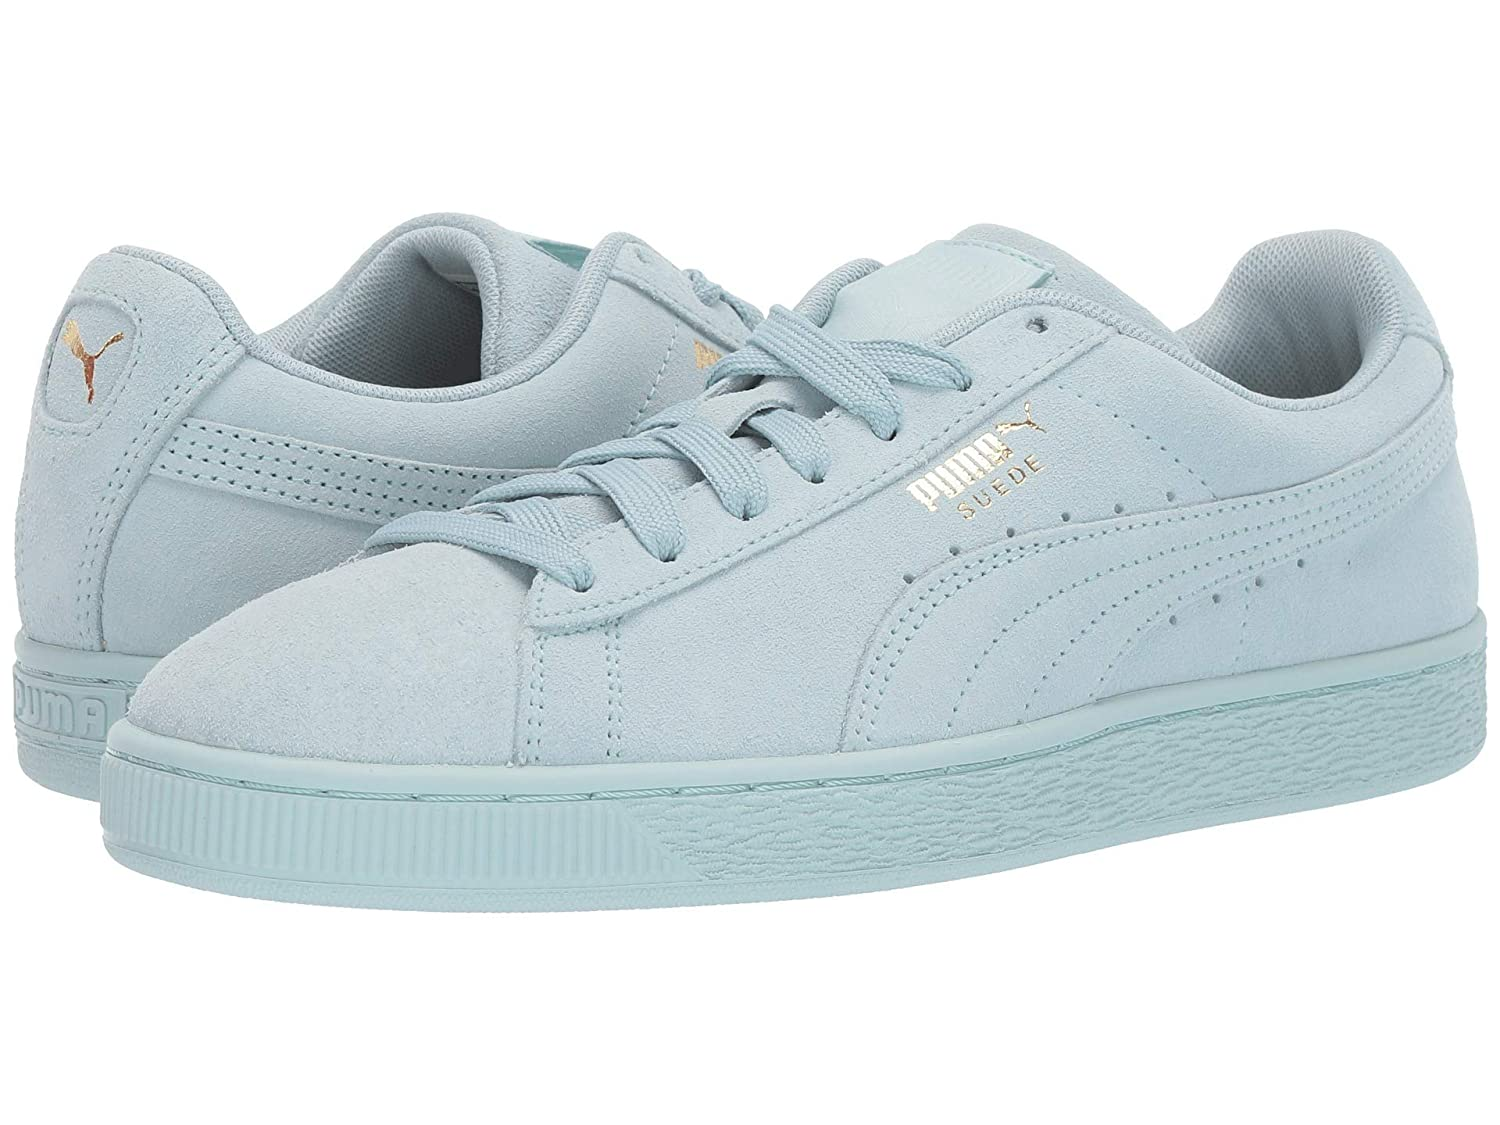 【即納】 [プーマ] メンズランニングシューズスニーカー靴 (32cm) Suede Classic [並行輸入品] Medium B07N8F1QDQ Light Light Sky/Puma Team Gold Men's 14 (32cm) Medium Men's 14 (32cm) Medium|Light Sky/Puma Team Gold, Interior shop モビリグランデ:91a7a3e6 --- tutor.officeporto.com